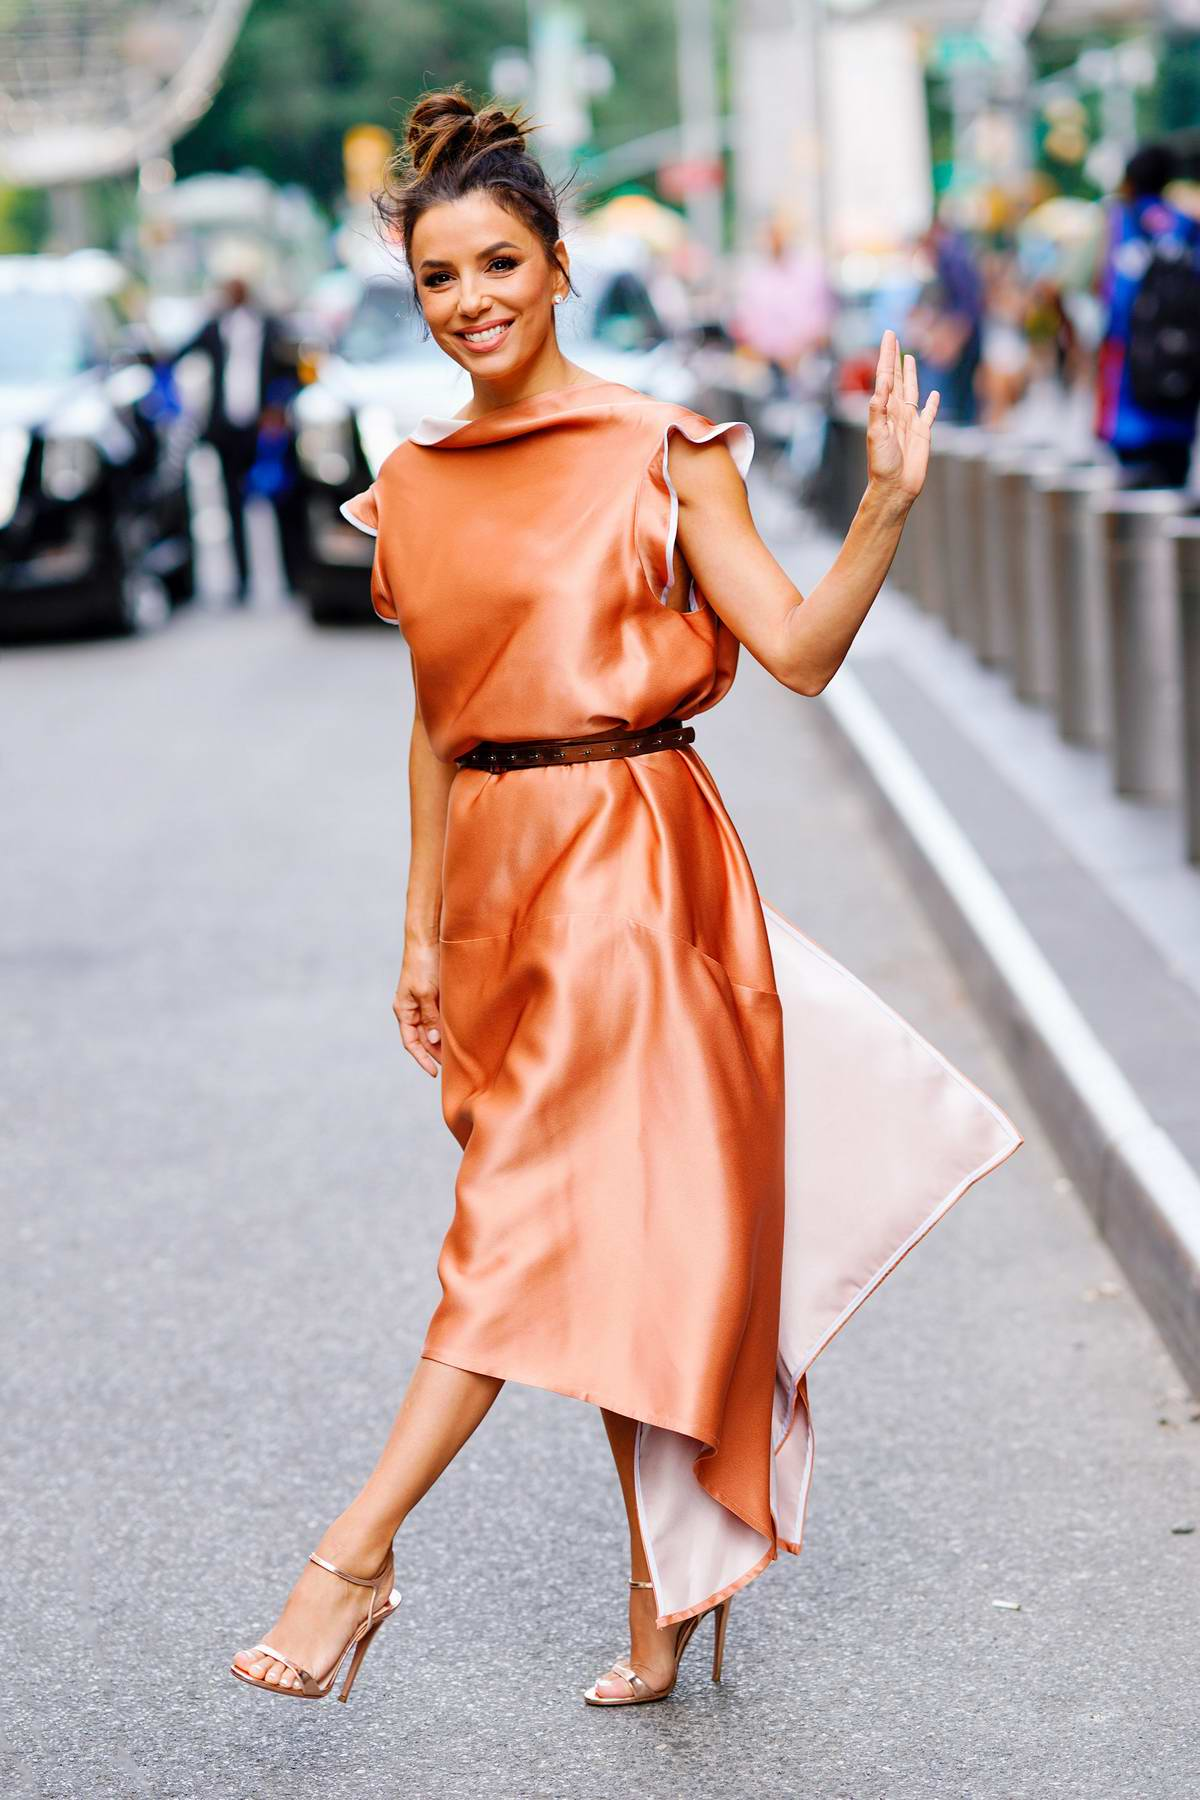 Eva Longoria wears a peach dress as she leaves Today Show in New York City